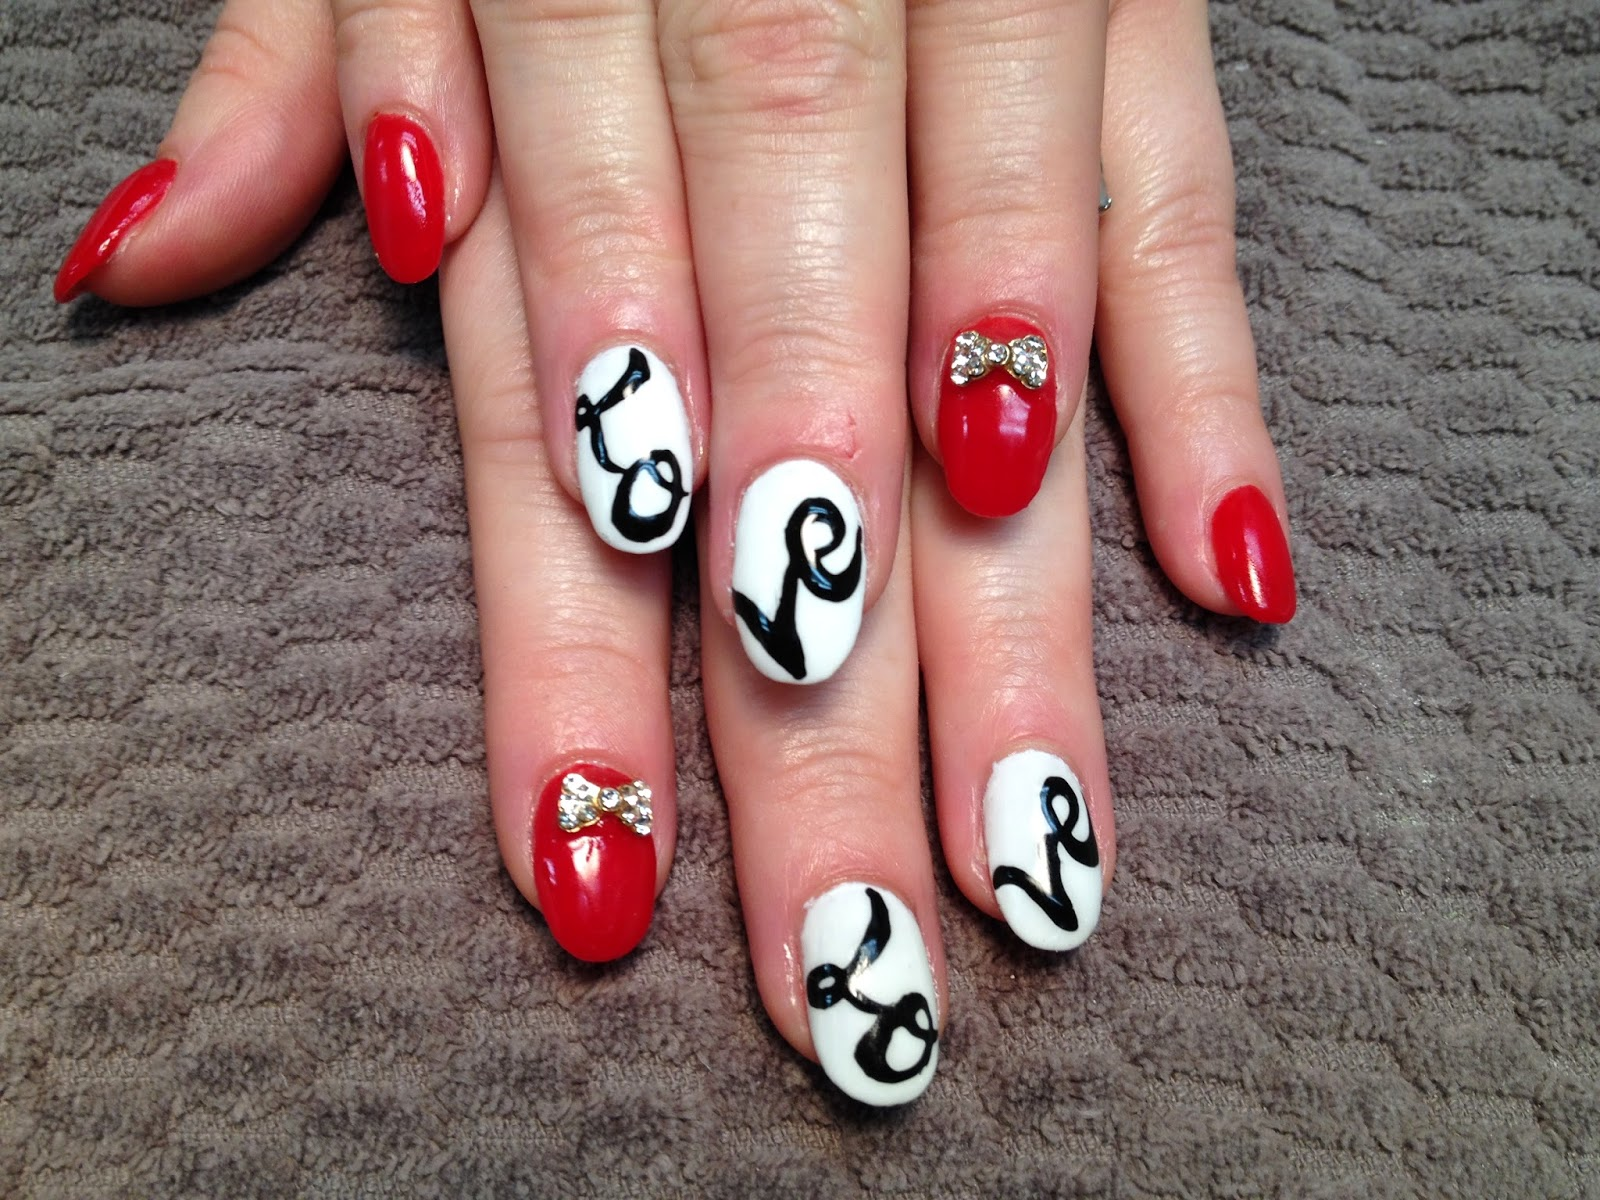 Ys nail blog spring nail designs phonetext 425 320 7261 email ysnail3gmail online bookingvagaroysnail please see the nail designs from february valentine nail designs prinsesfo Image collections